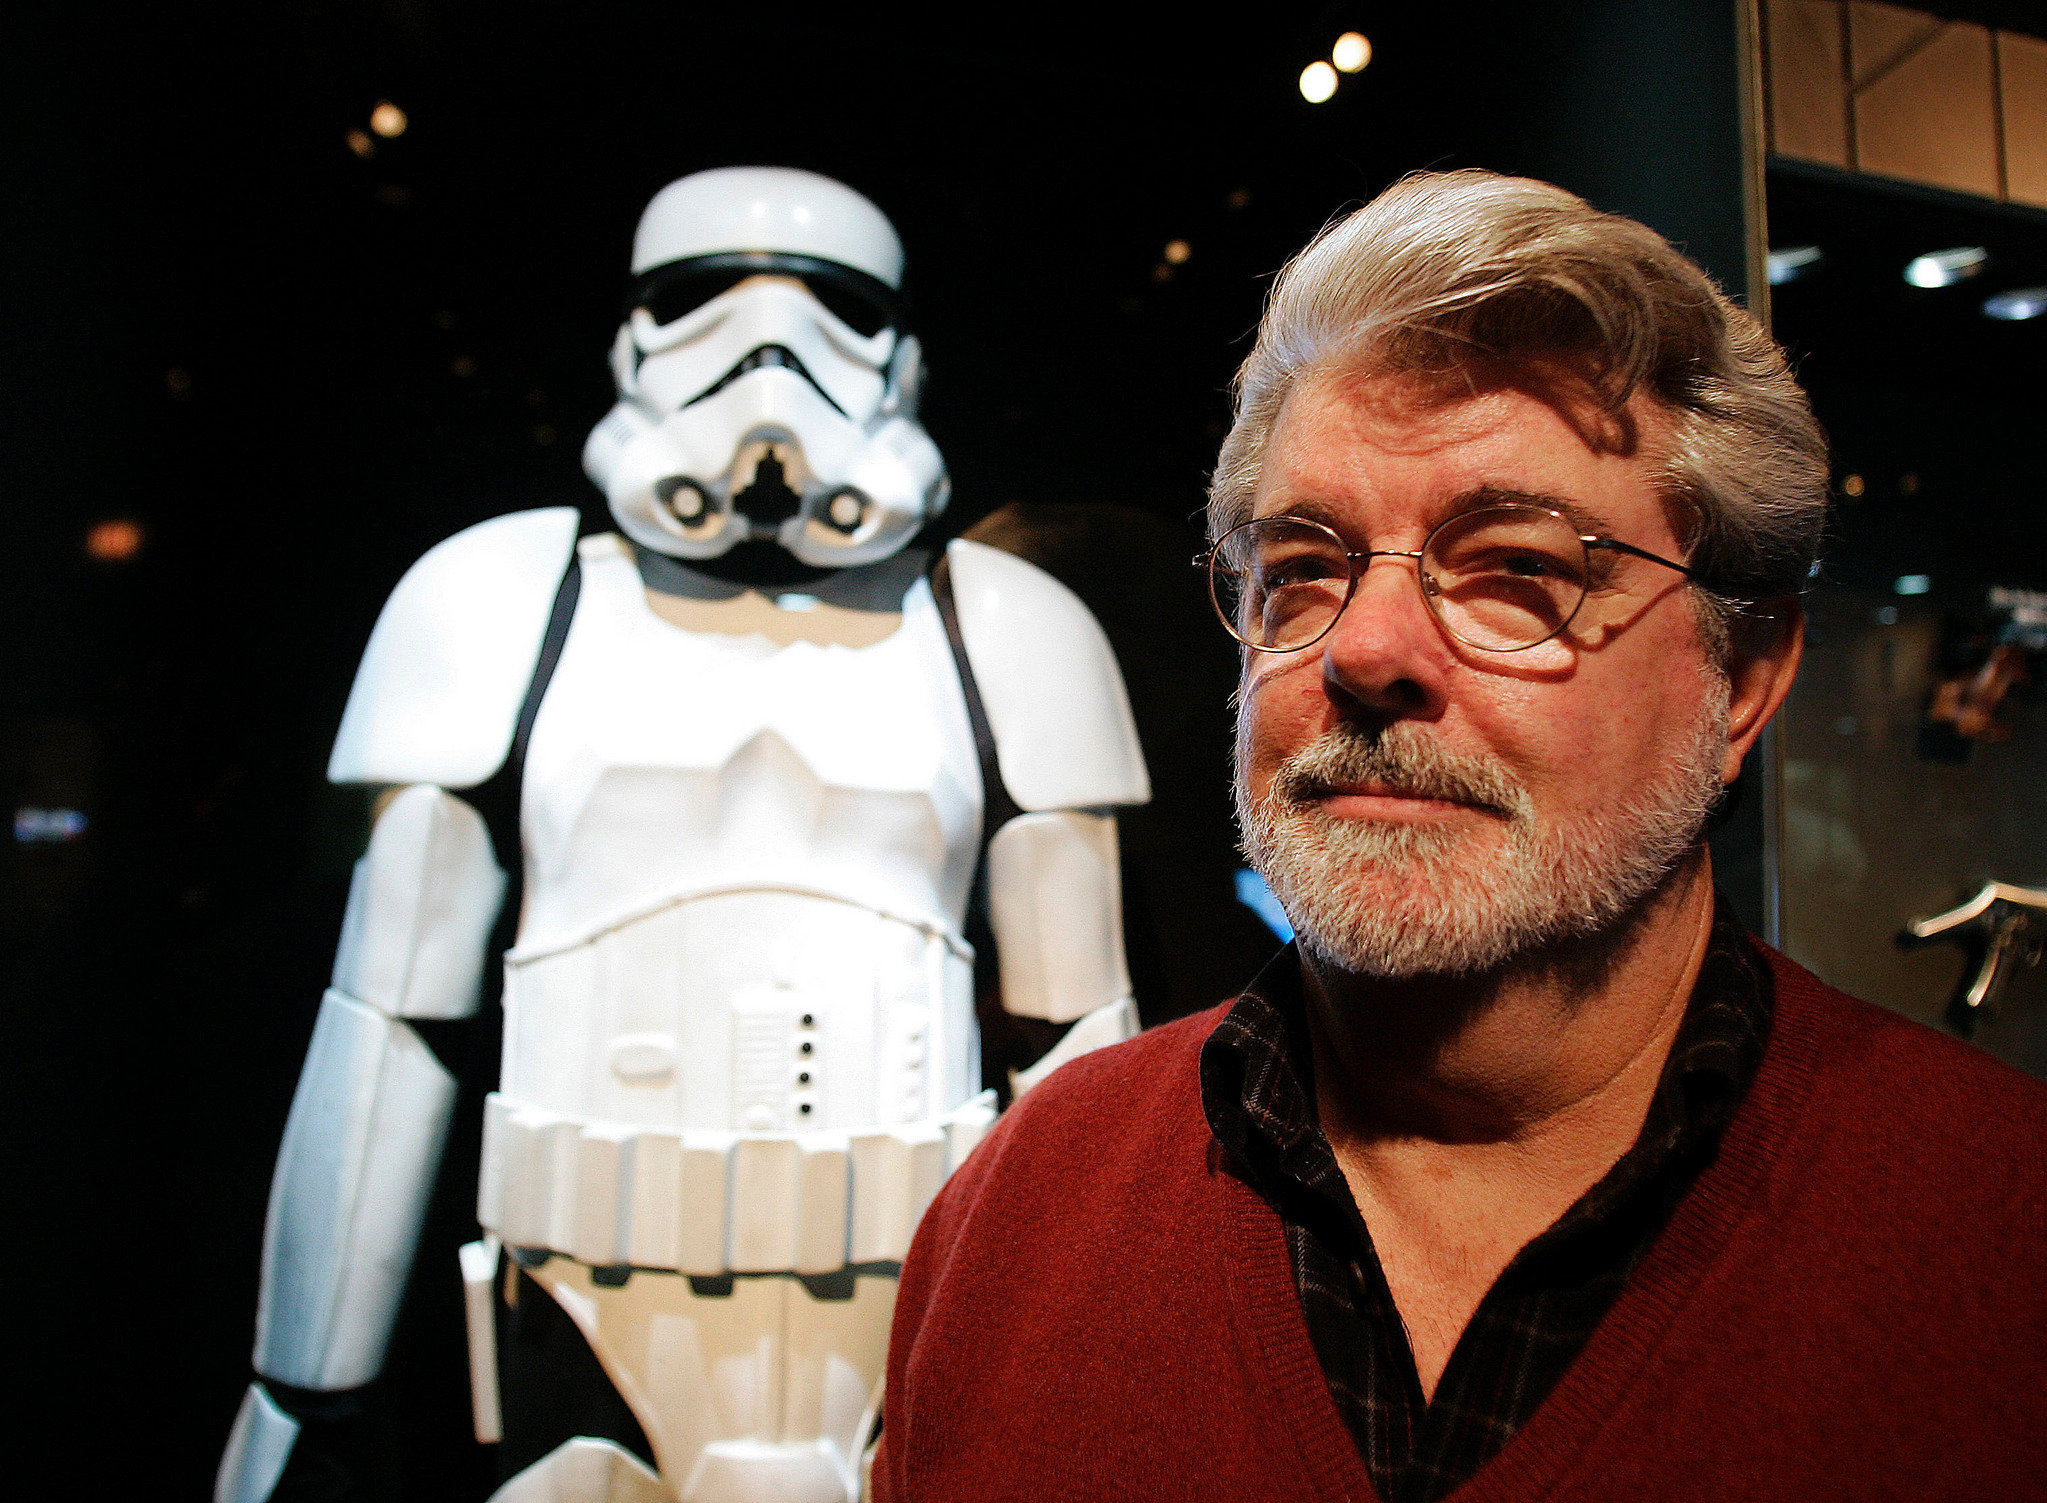 an analysis of the creative mind of george lucas and the history of the star wars franchise Lucasfilm and its franchise management founded by george lucas in 1982 as lucasfilm games analysis of star wars.